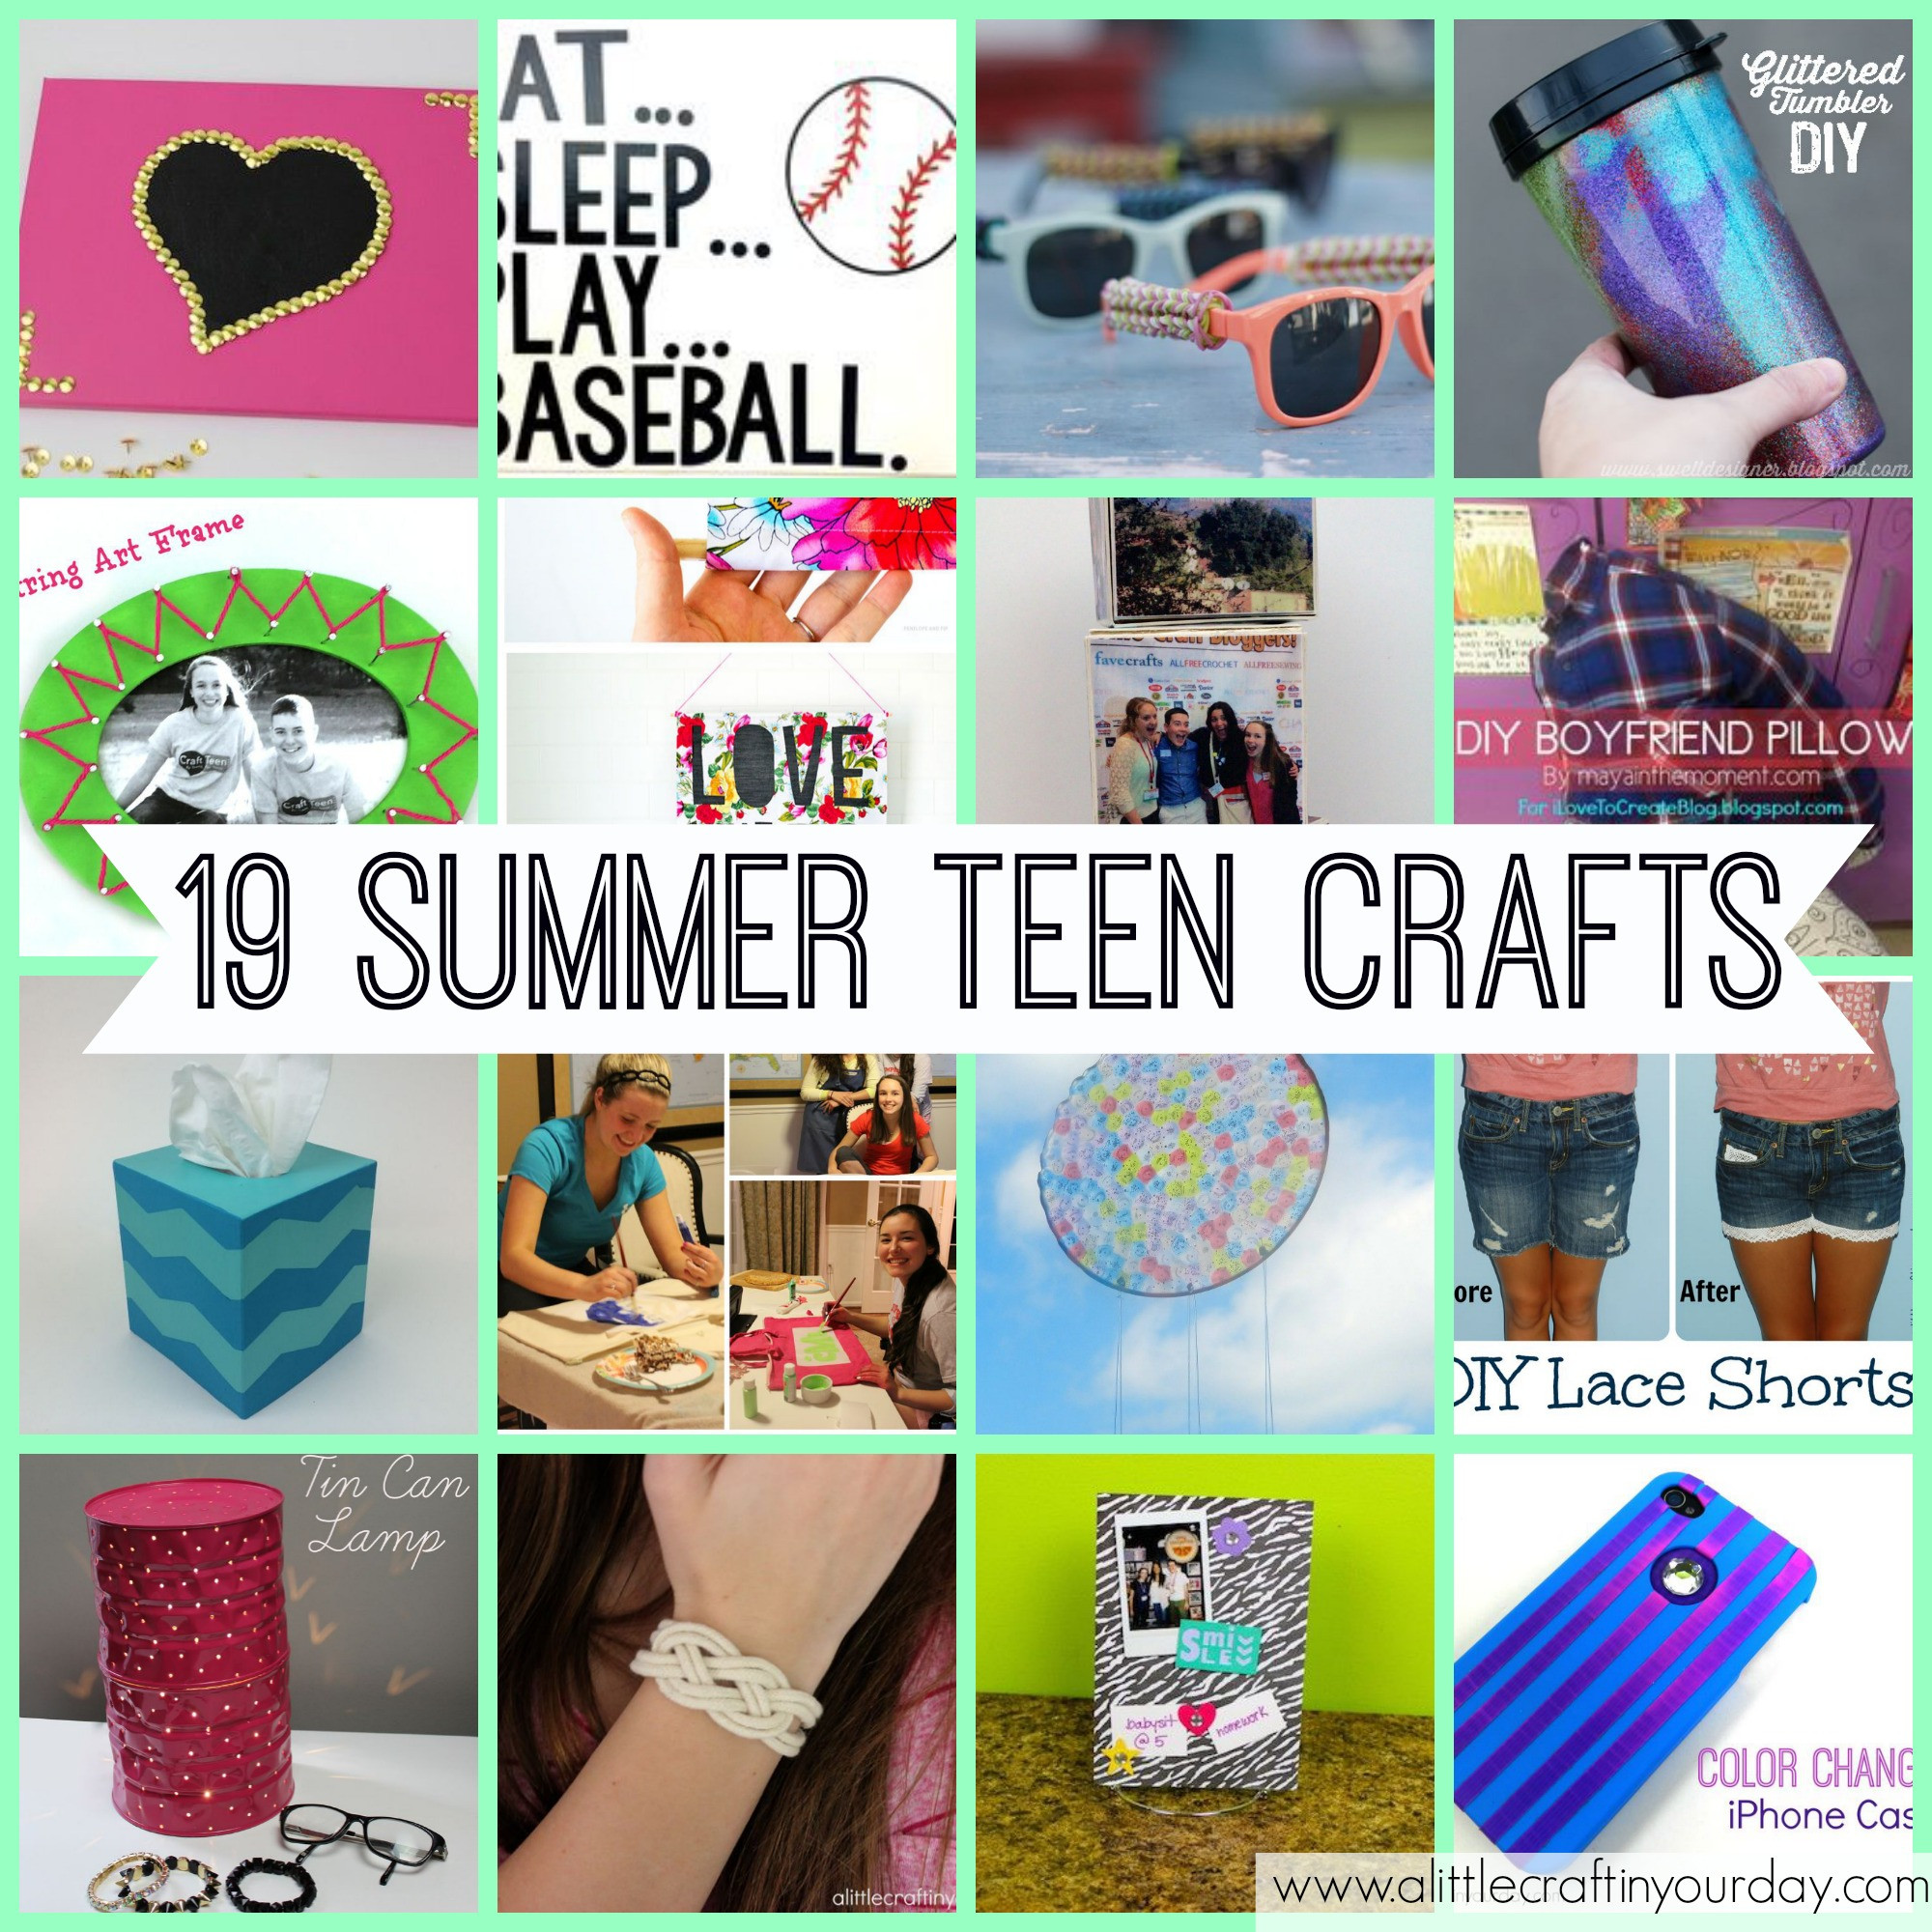 Best ideas about Arts And Crafts For Teenager . Save or Pin 19 Teen Crafts for Summer A Little Craft In Your Day Now.